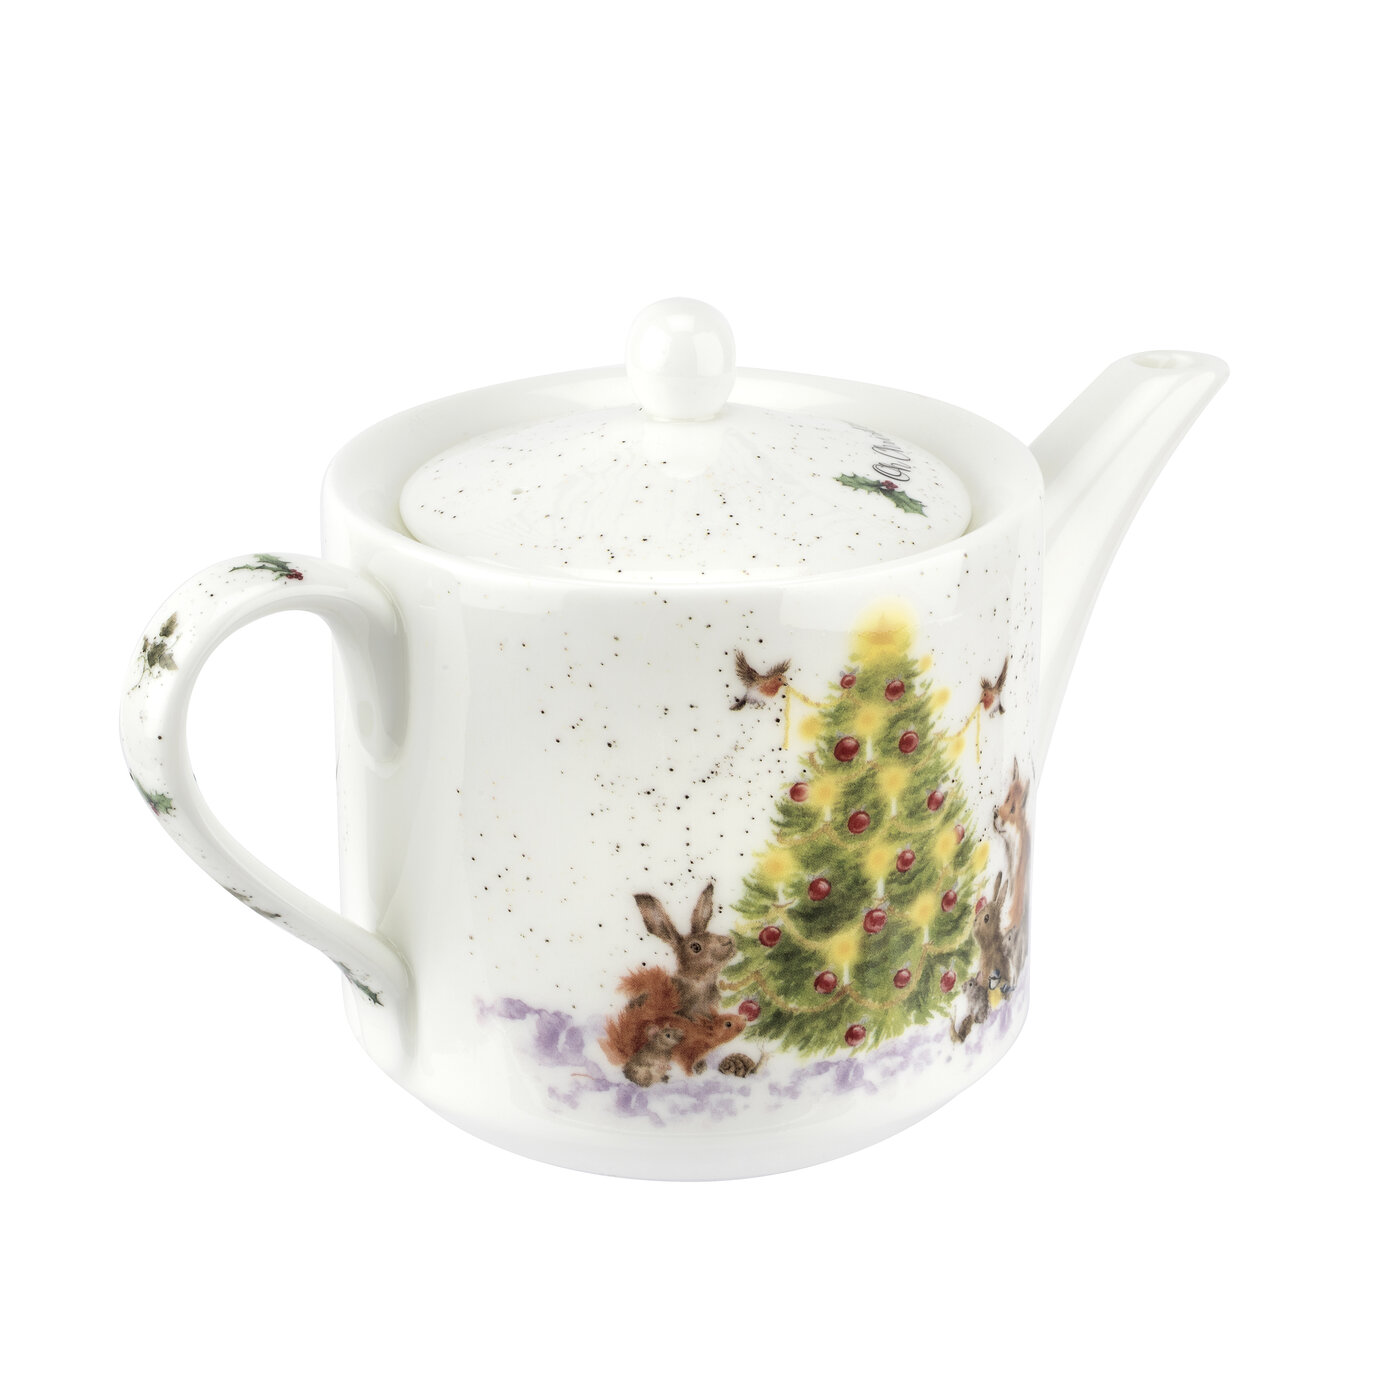 Royal Worcester Wrendale Designs Teapot 1 Pint (Oh Christmas Tree) image number 1